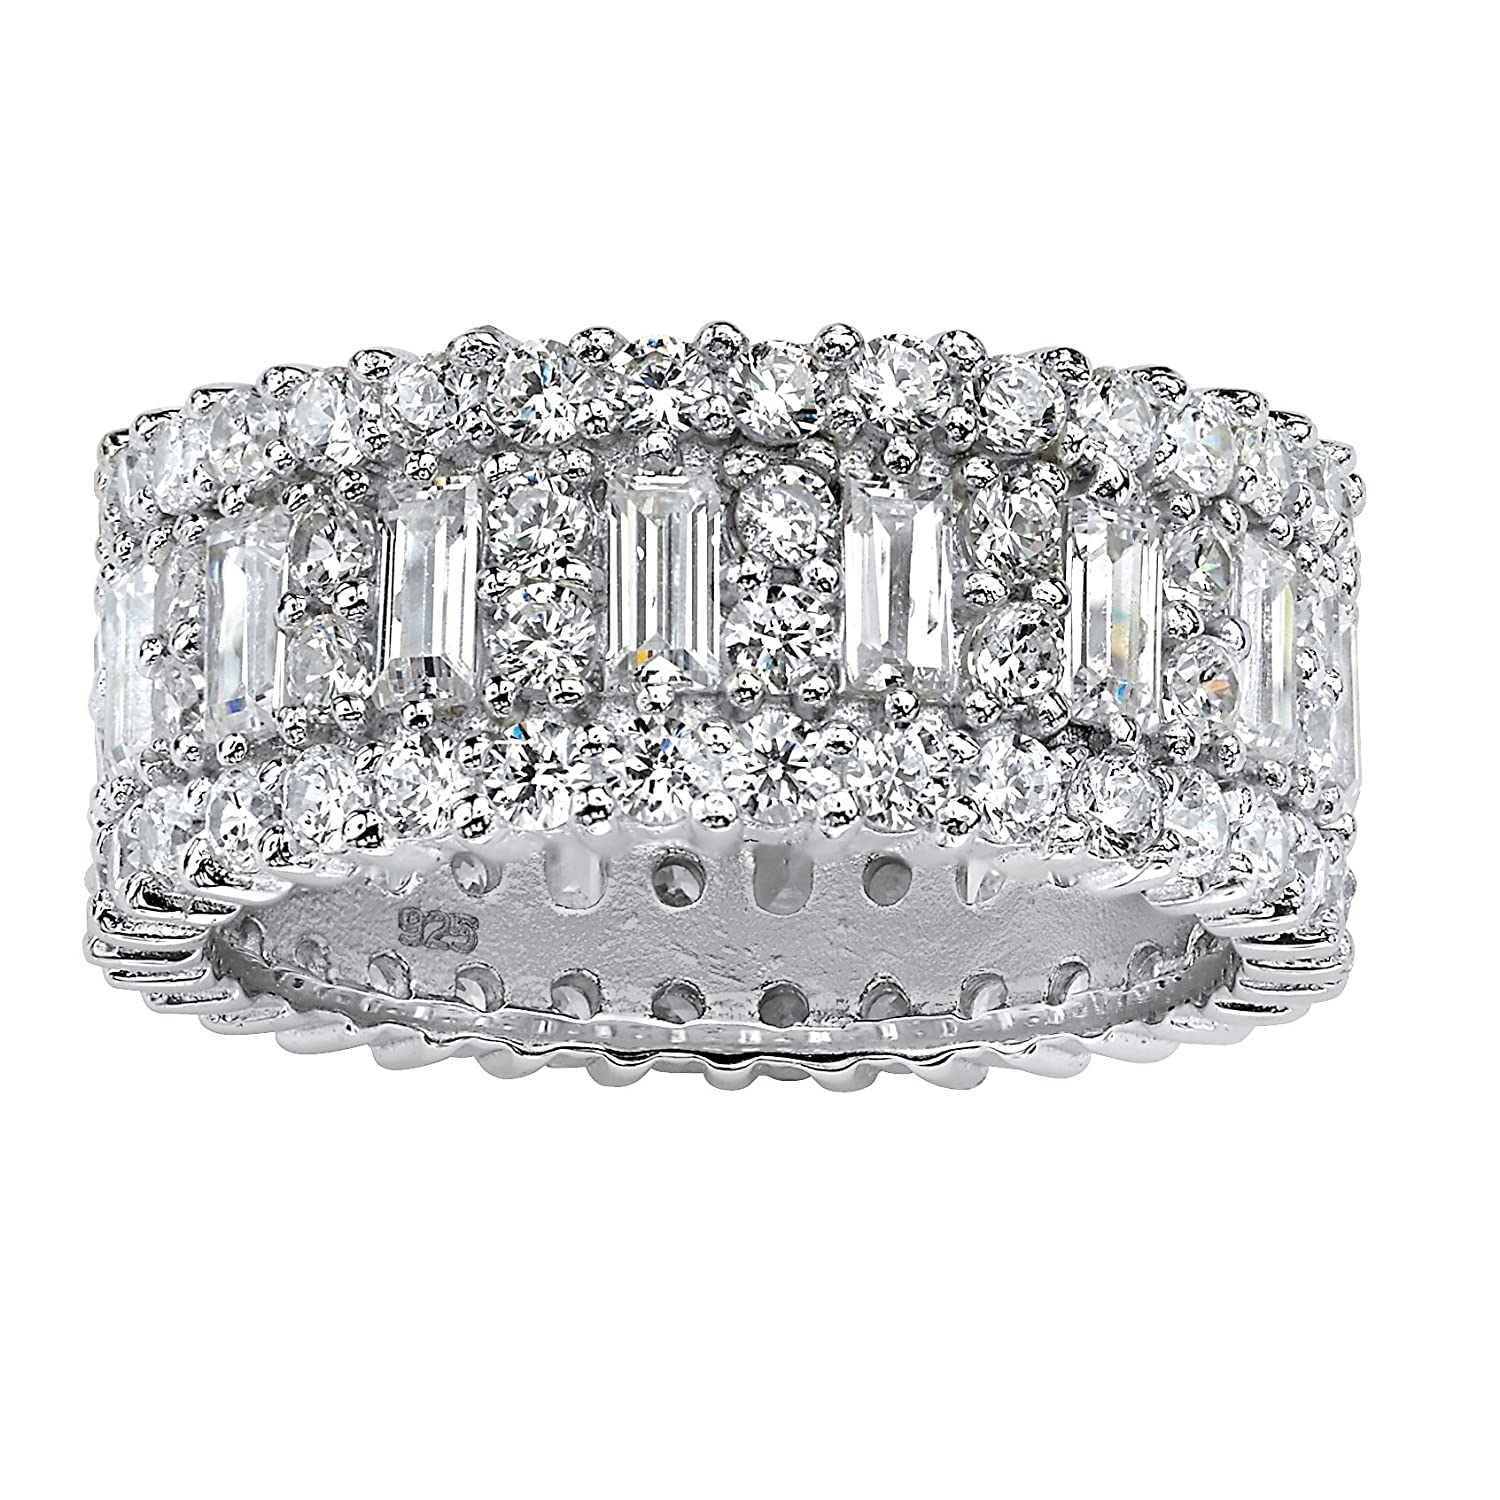 eternity shipping silver watches free product sterling band zirconia cubic orders ring jewelry over overstock rocks glitzy bands size on stonez icz gold